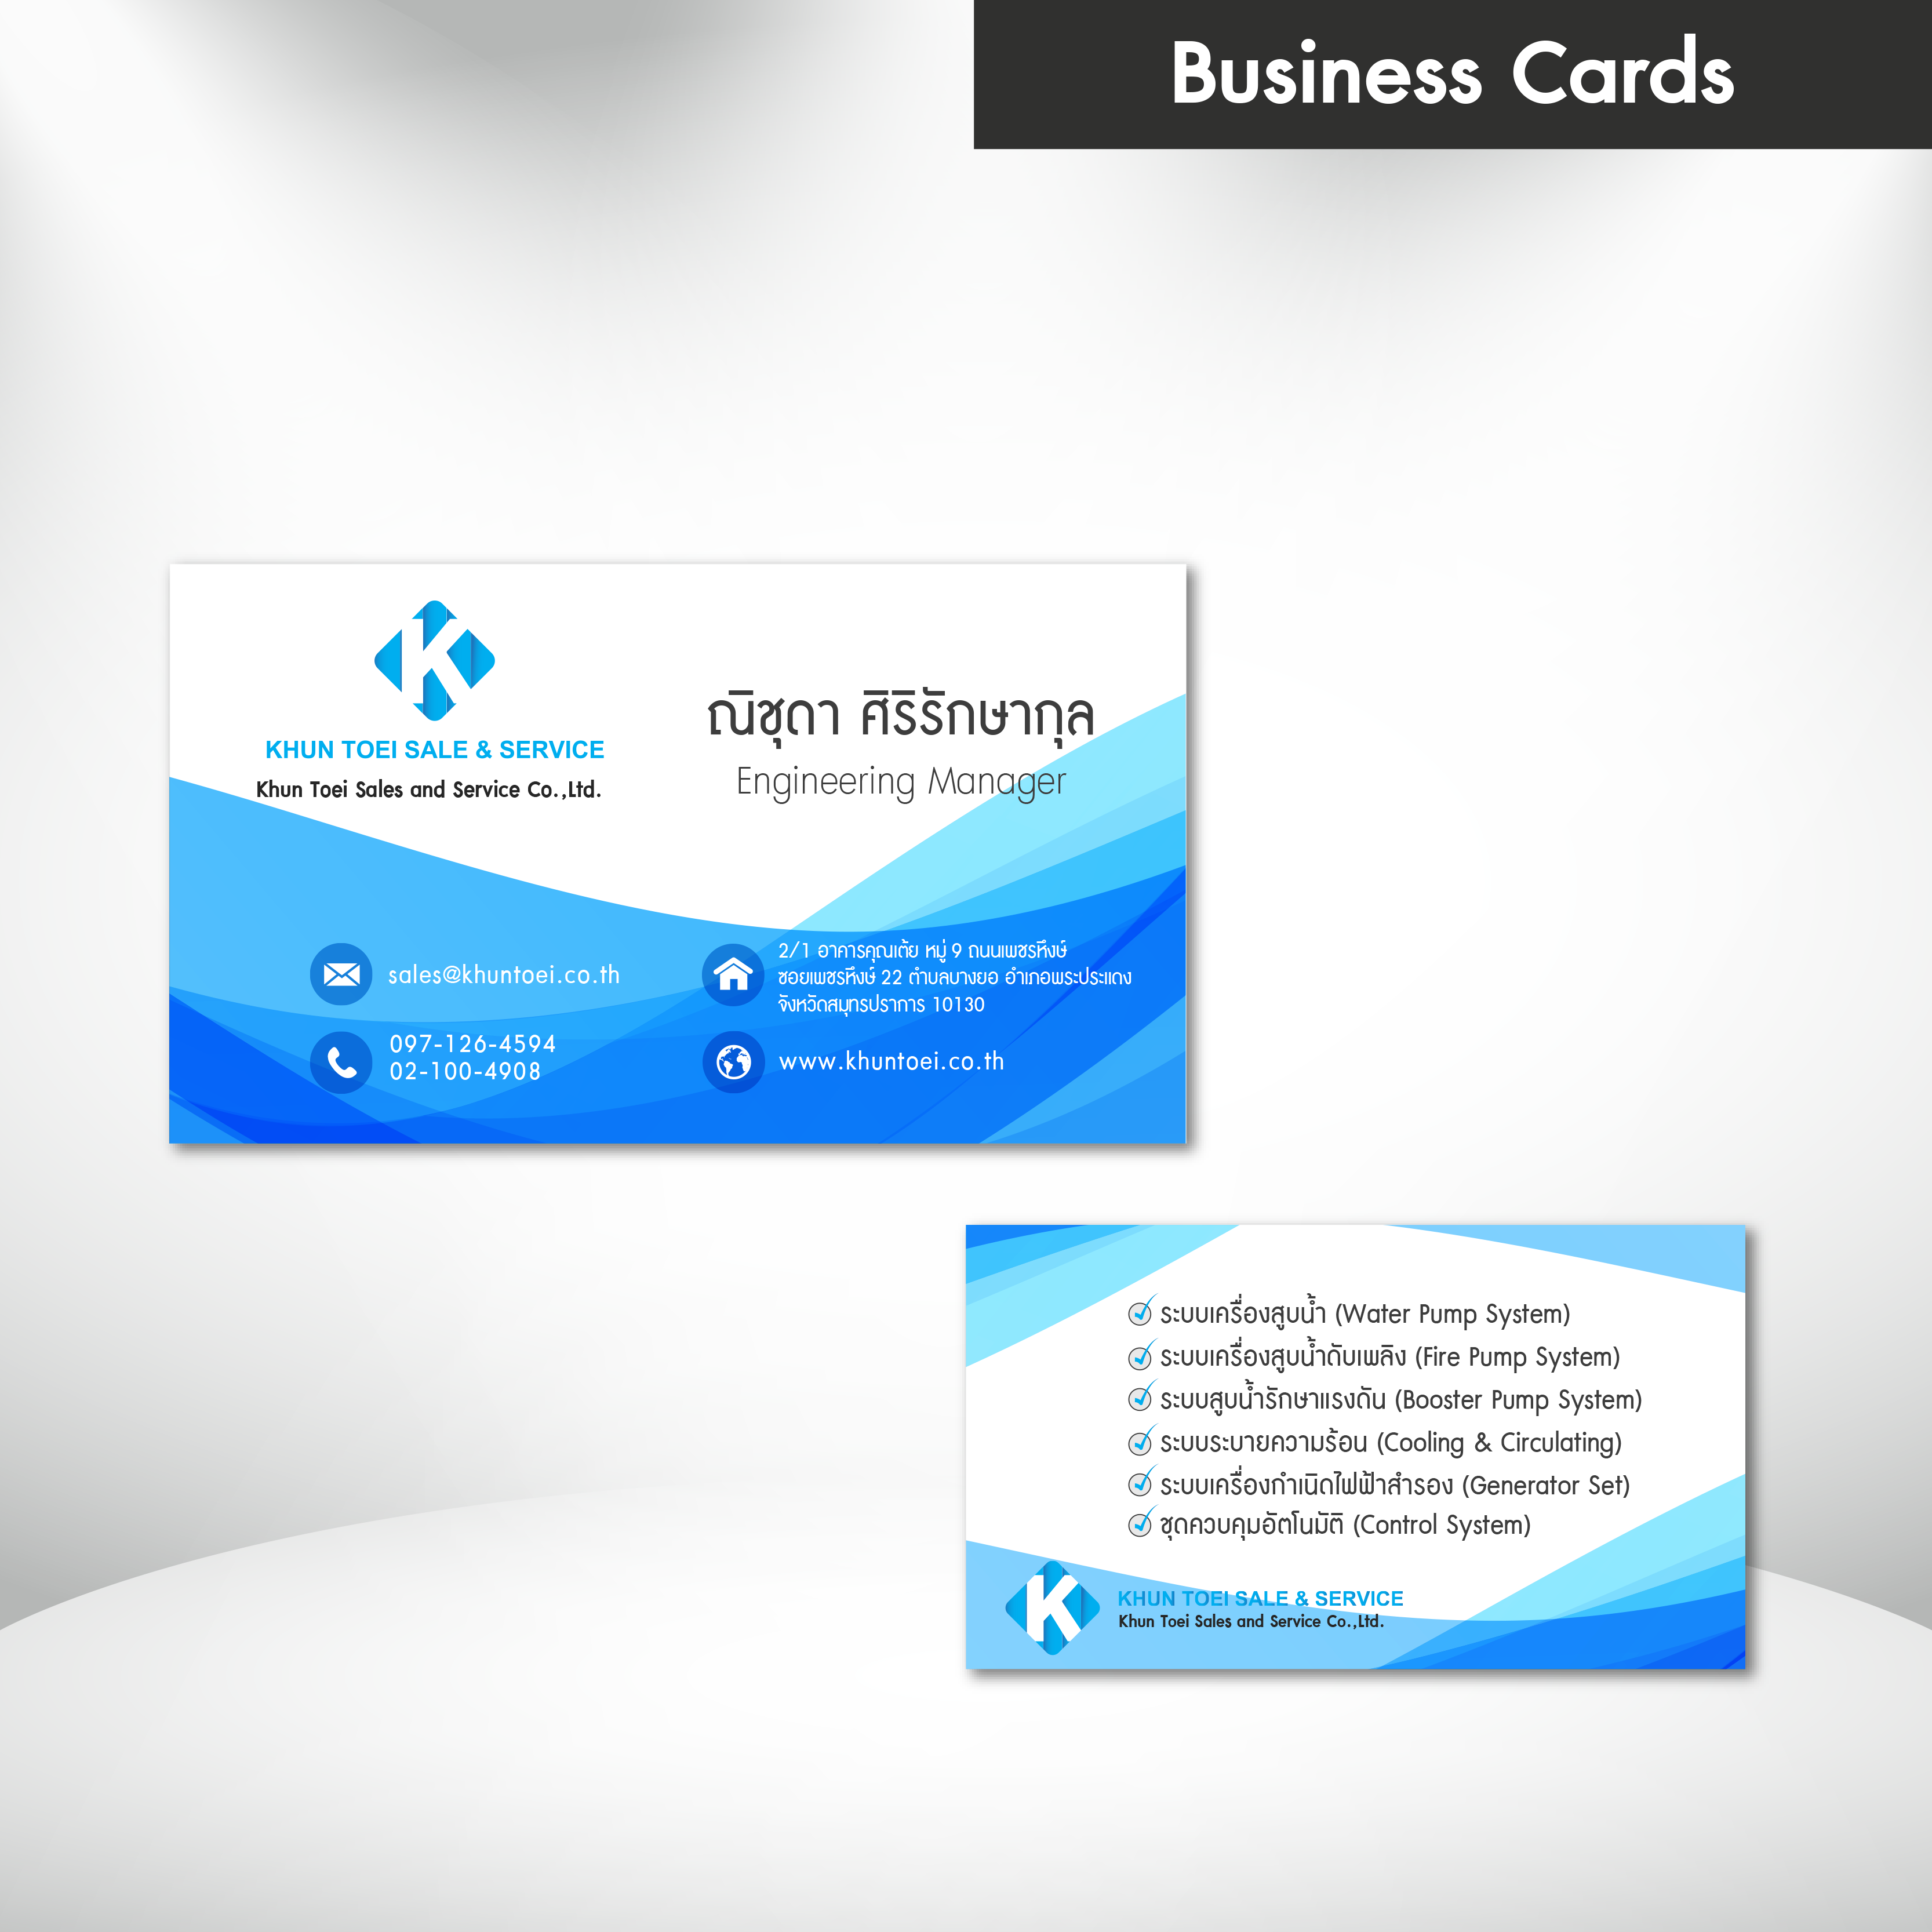 Business Cards / นามบัตร